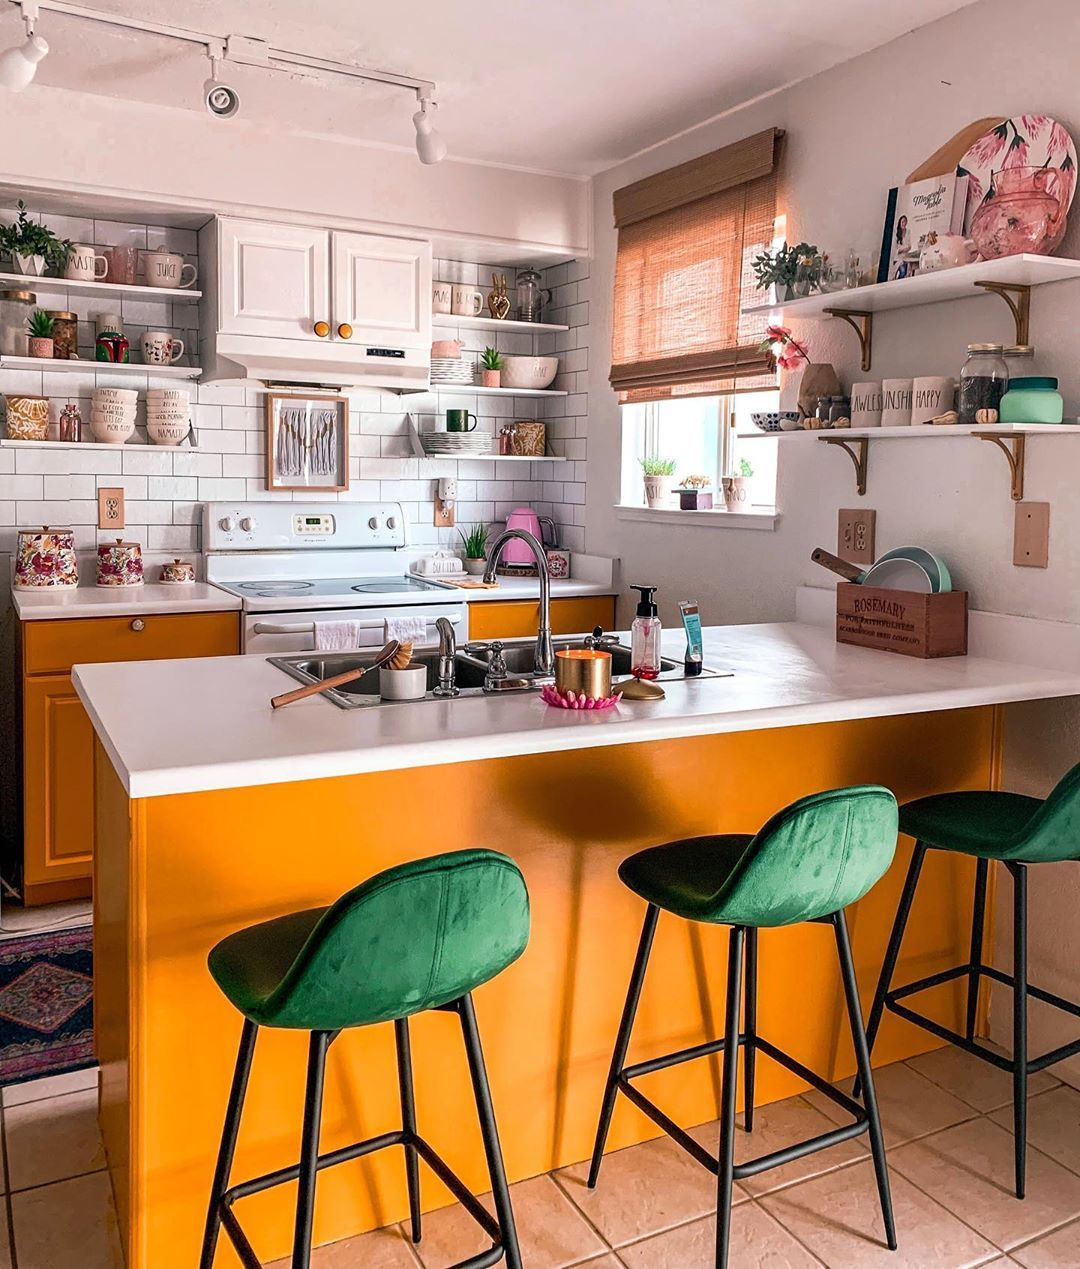 Love The Green Bar Stools With The Orange Drawers Mrs Shalapsik